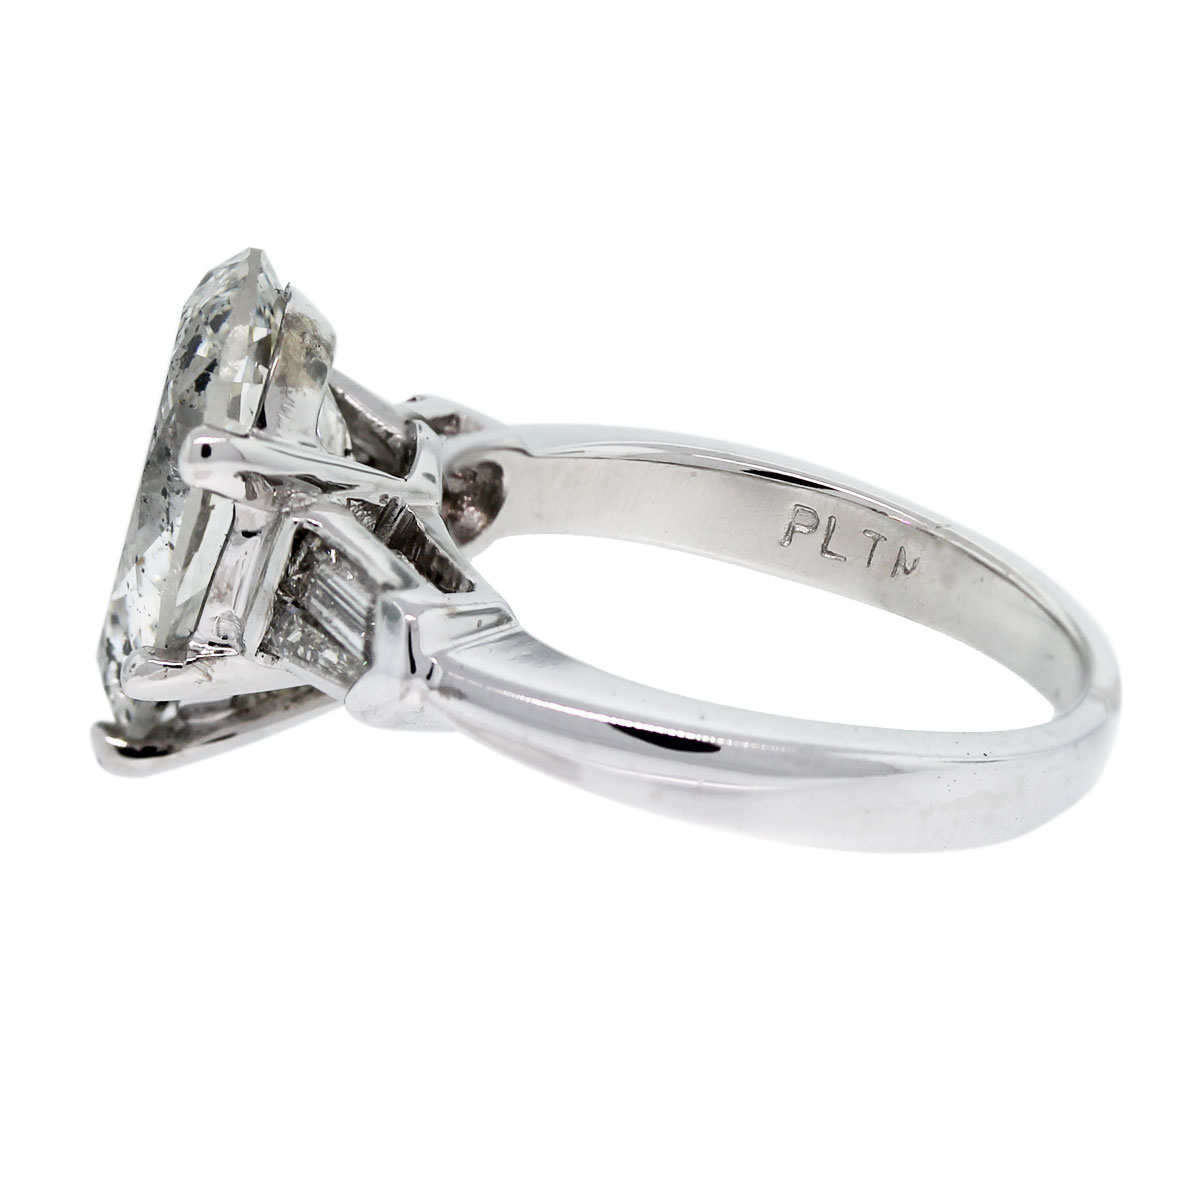 Check out this Platinum 3.47ct Pear Shape & Baguette Diamond Engagement Ring!